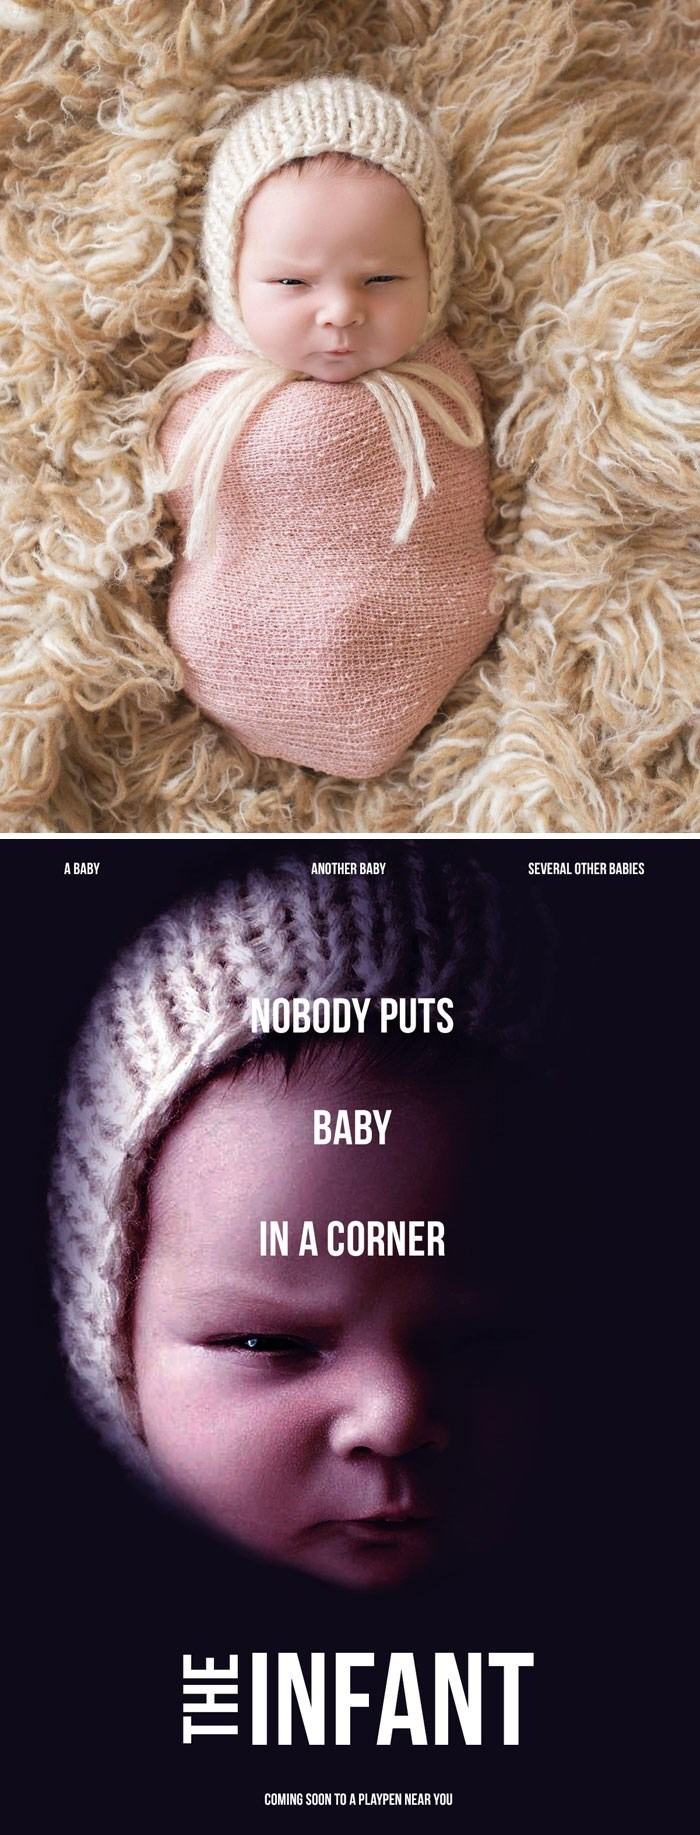 Nose - A BABY ANOTHER BABY SEVERAL OTHER BABIES NOBODY PUTS BABY IN A CORNER TEINFANT COMING SOON TO A PLAYPEN NEAR YOU